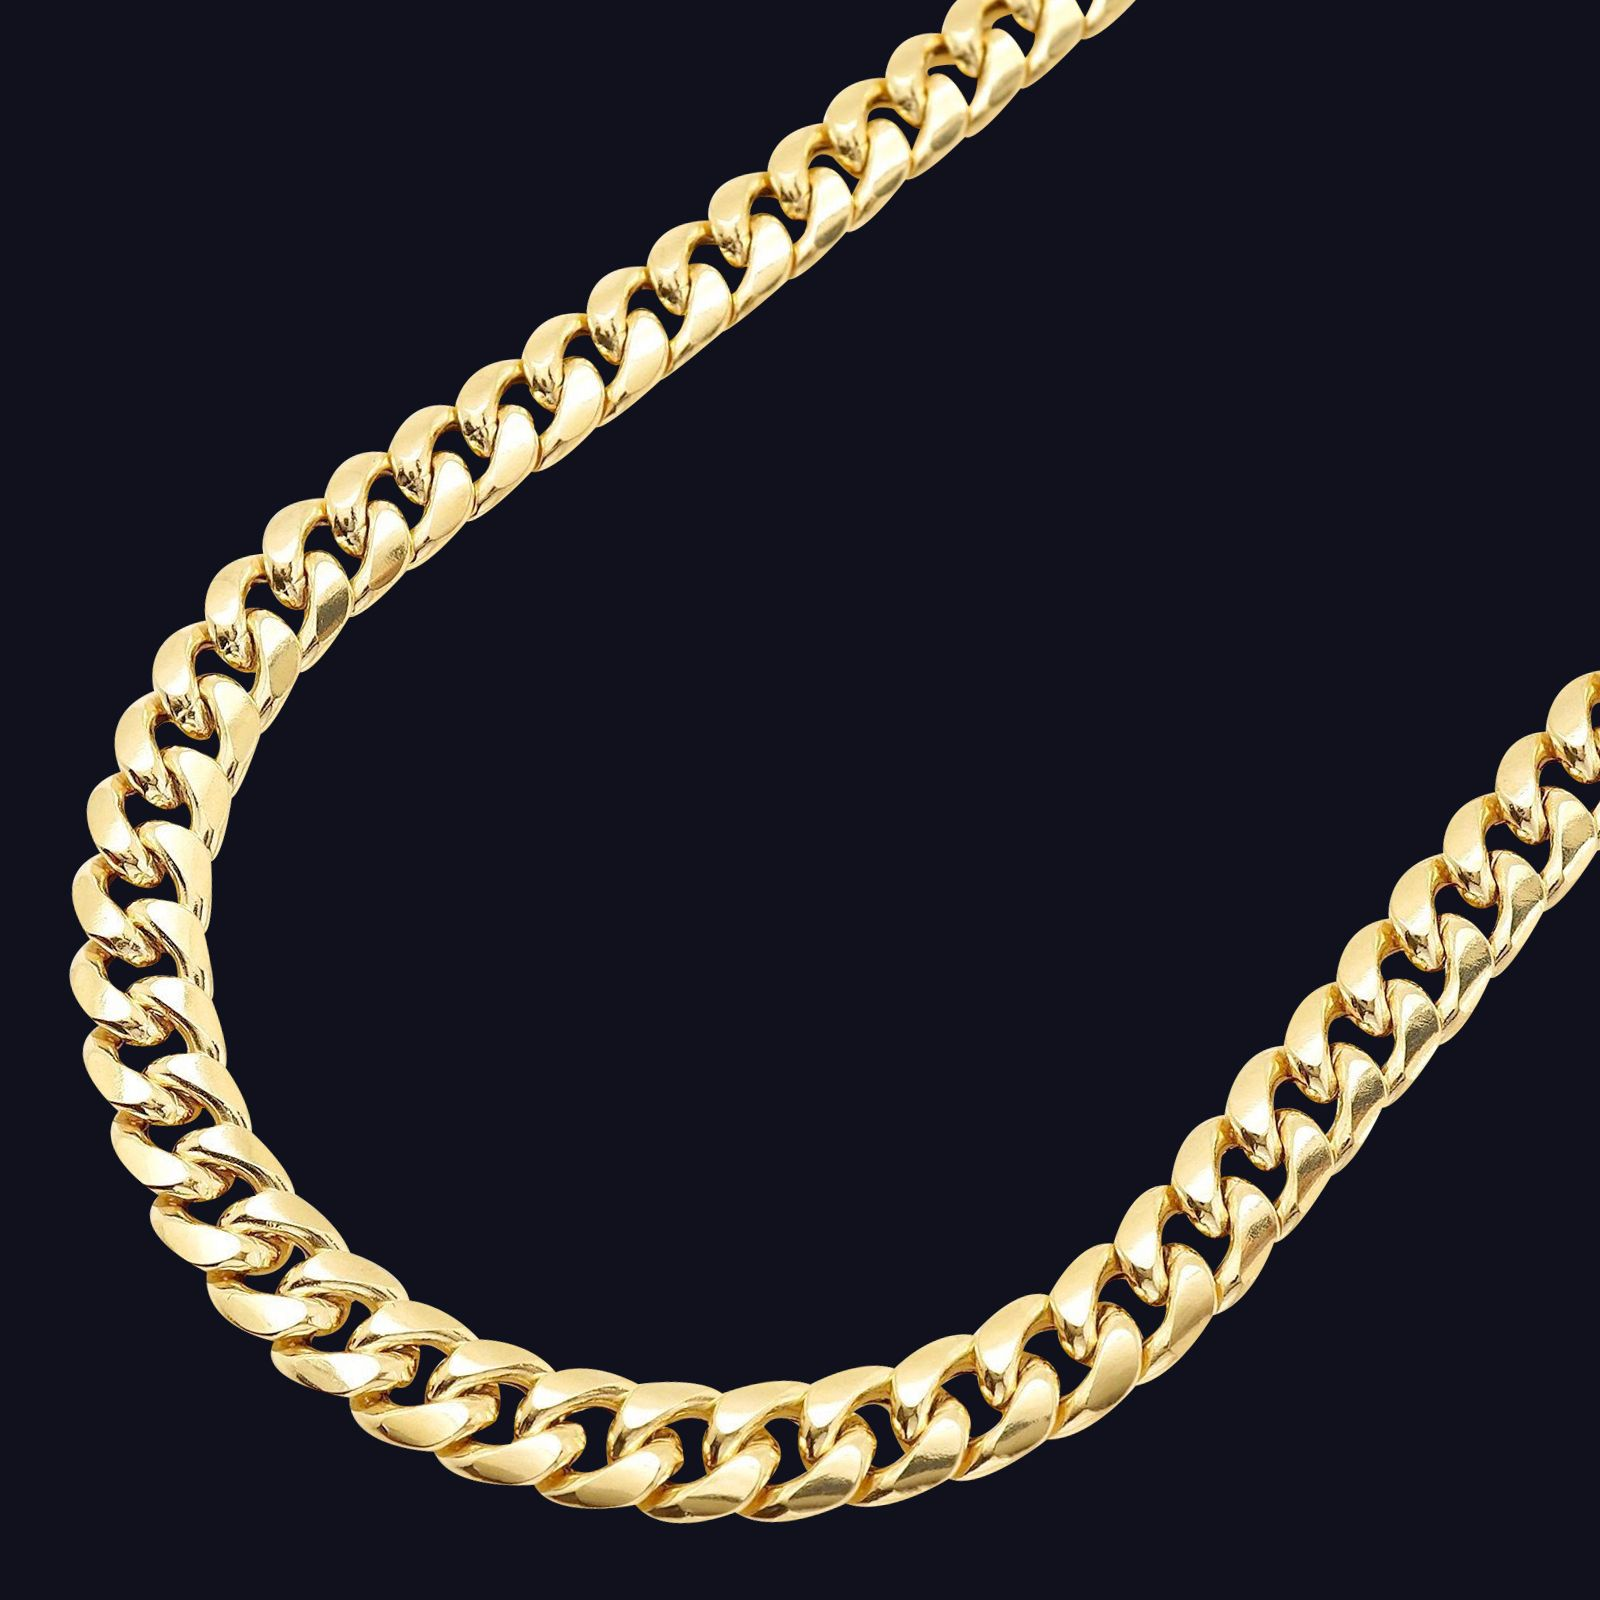 9 5mm 14k Yellow Gold Cuban Link Chain Necklace Gold Cuban Link Chain Cuban Link Chain Chain